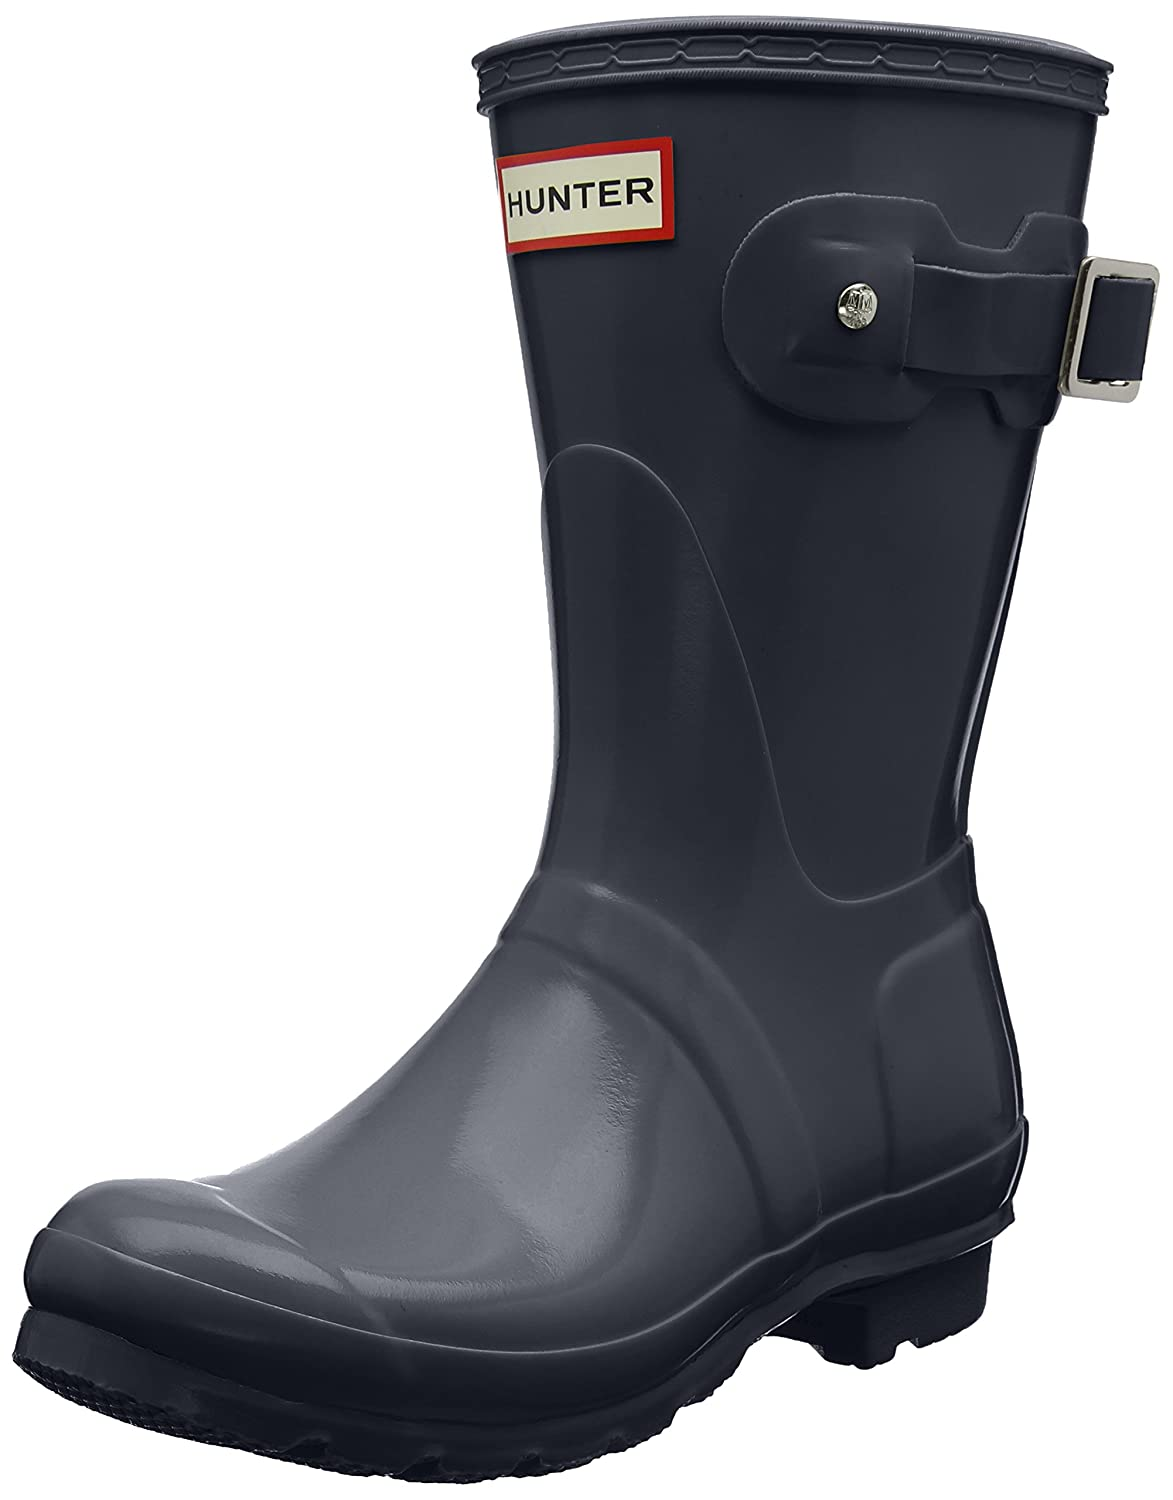 Hunter Women's Original Short Gloss Rain Boots B01MXZ4DP9 7 B(M) US|Dark Slate